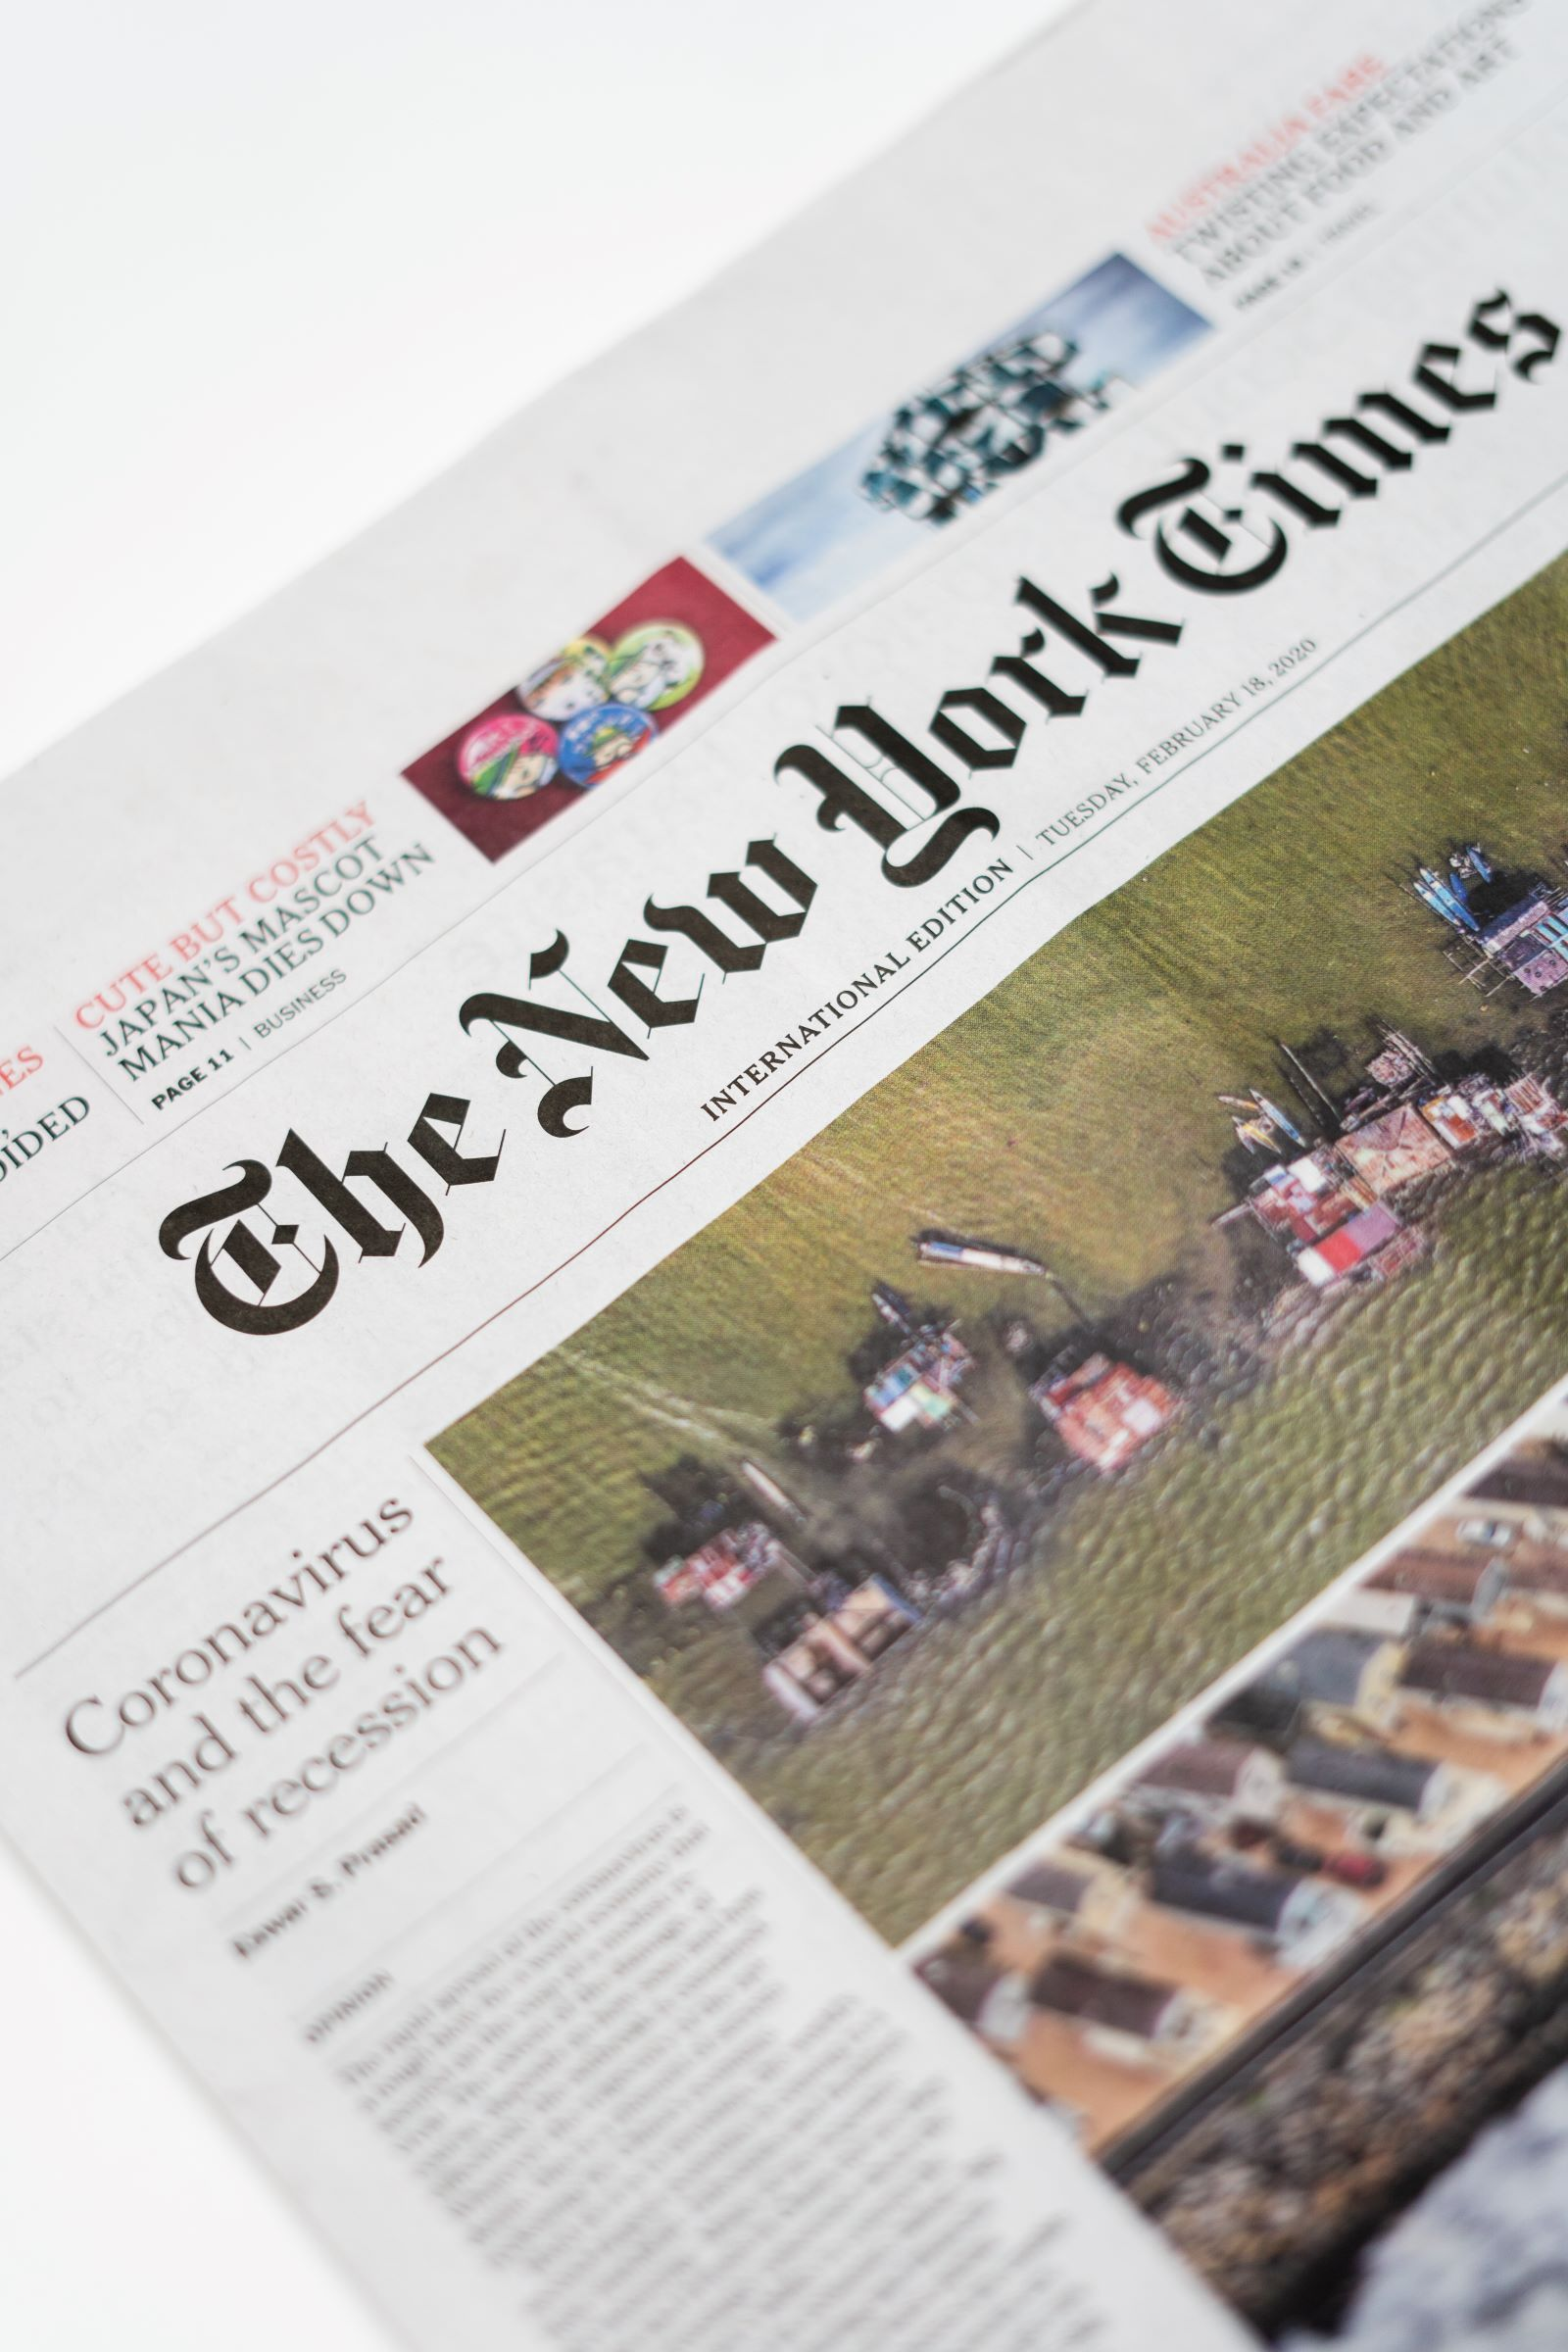 New York Times Newspaper with Coronavirus and the fear of recession on the front page